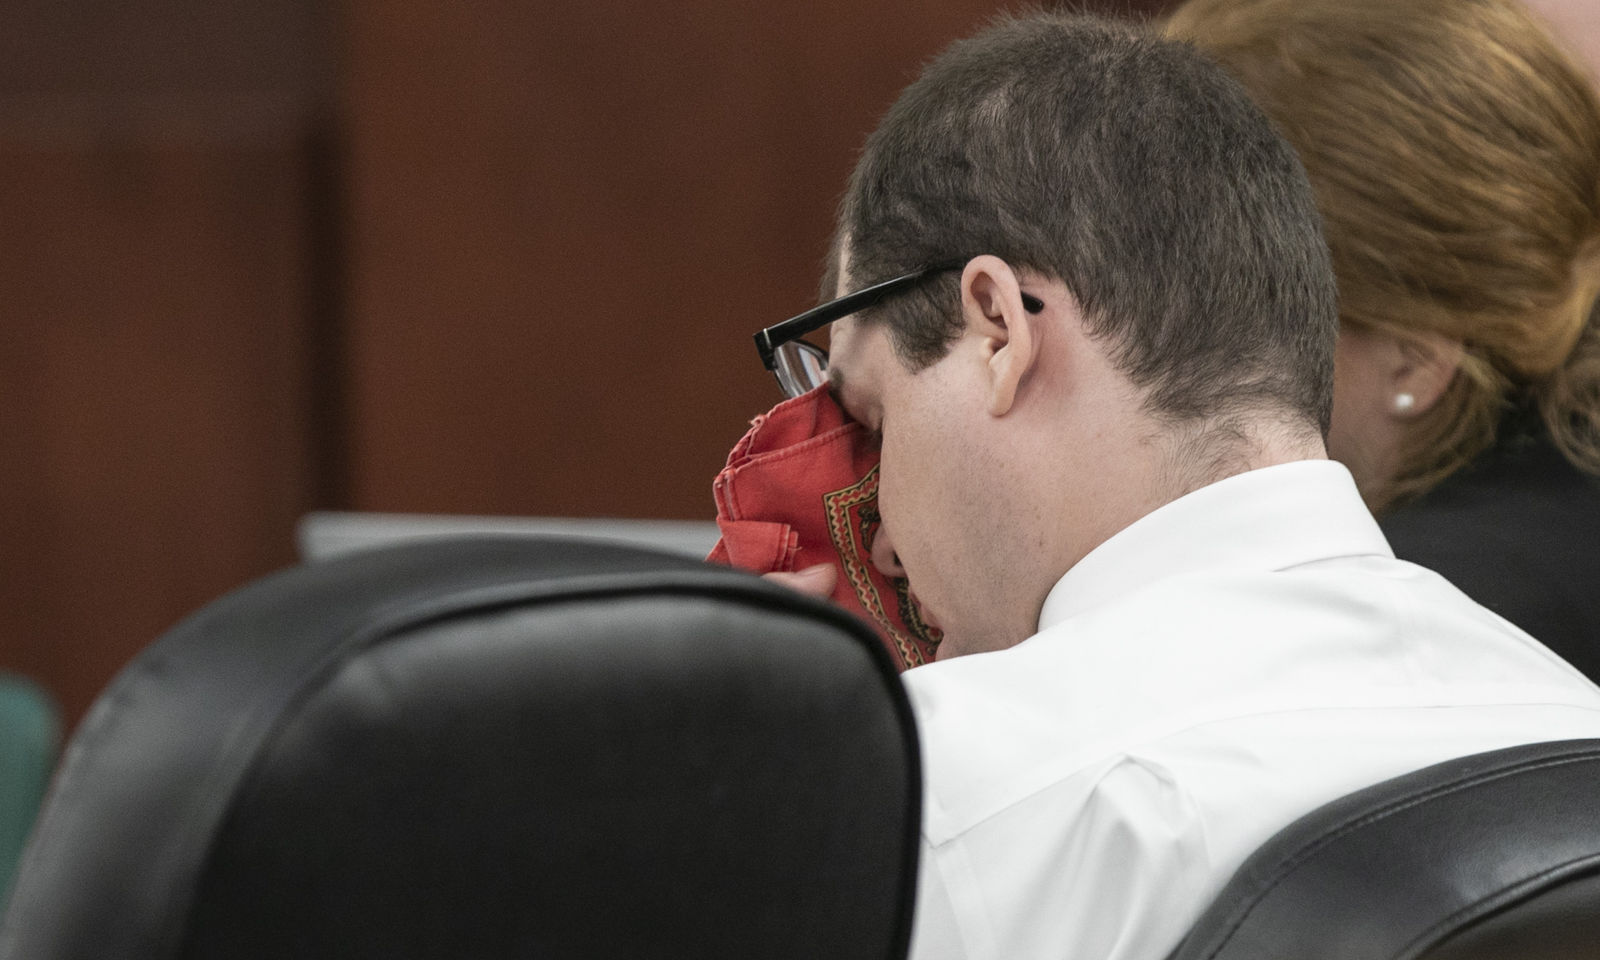 Timothy Jones Jr. wipes his eyes as his ex-wife Amber Kyzer, mother of five children who were killed by their father, Jones, during the sentencing phase of Jones' trial in Lexington, S.C., Tuesday, June 11, 2019. (Tracy Glantz/The State via AP, Pool)